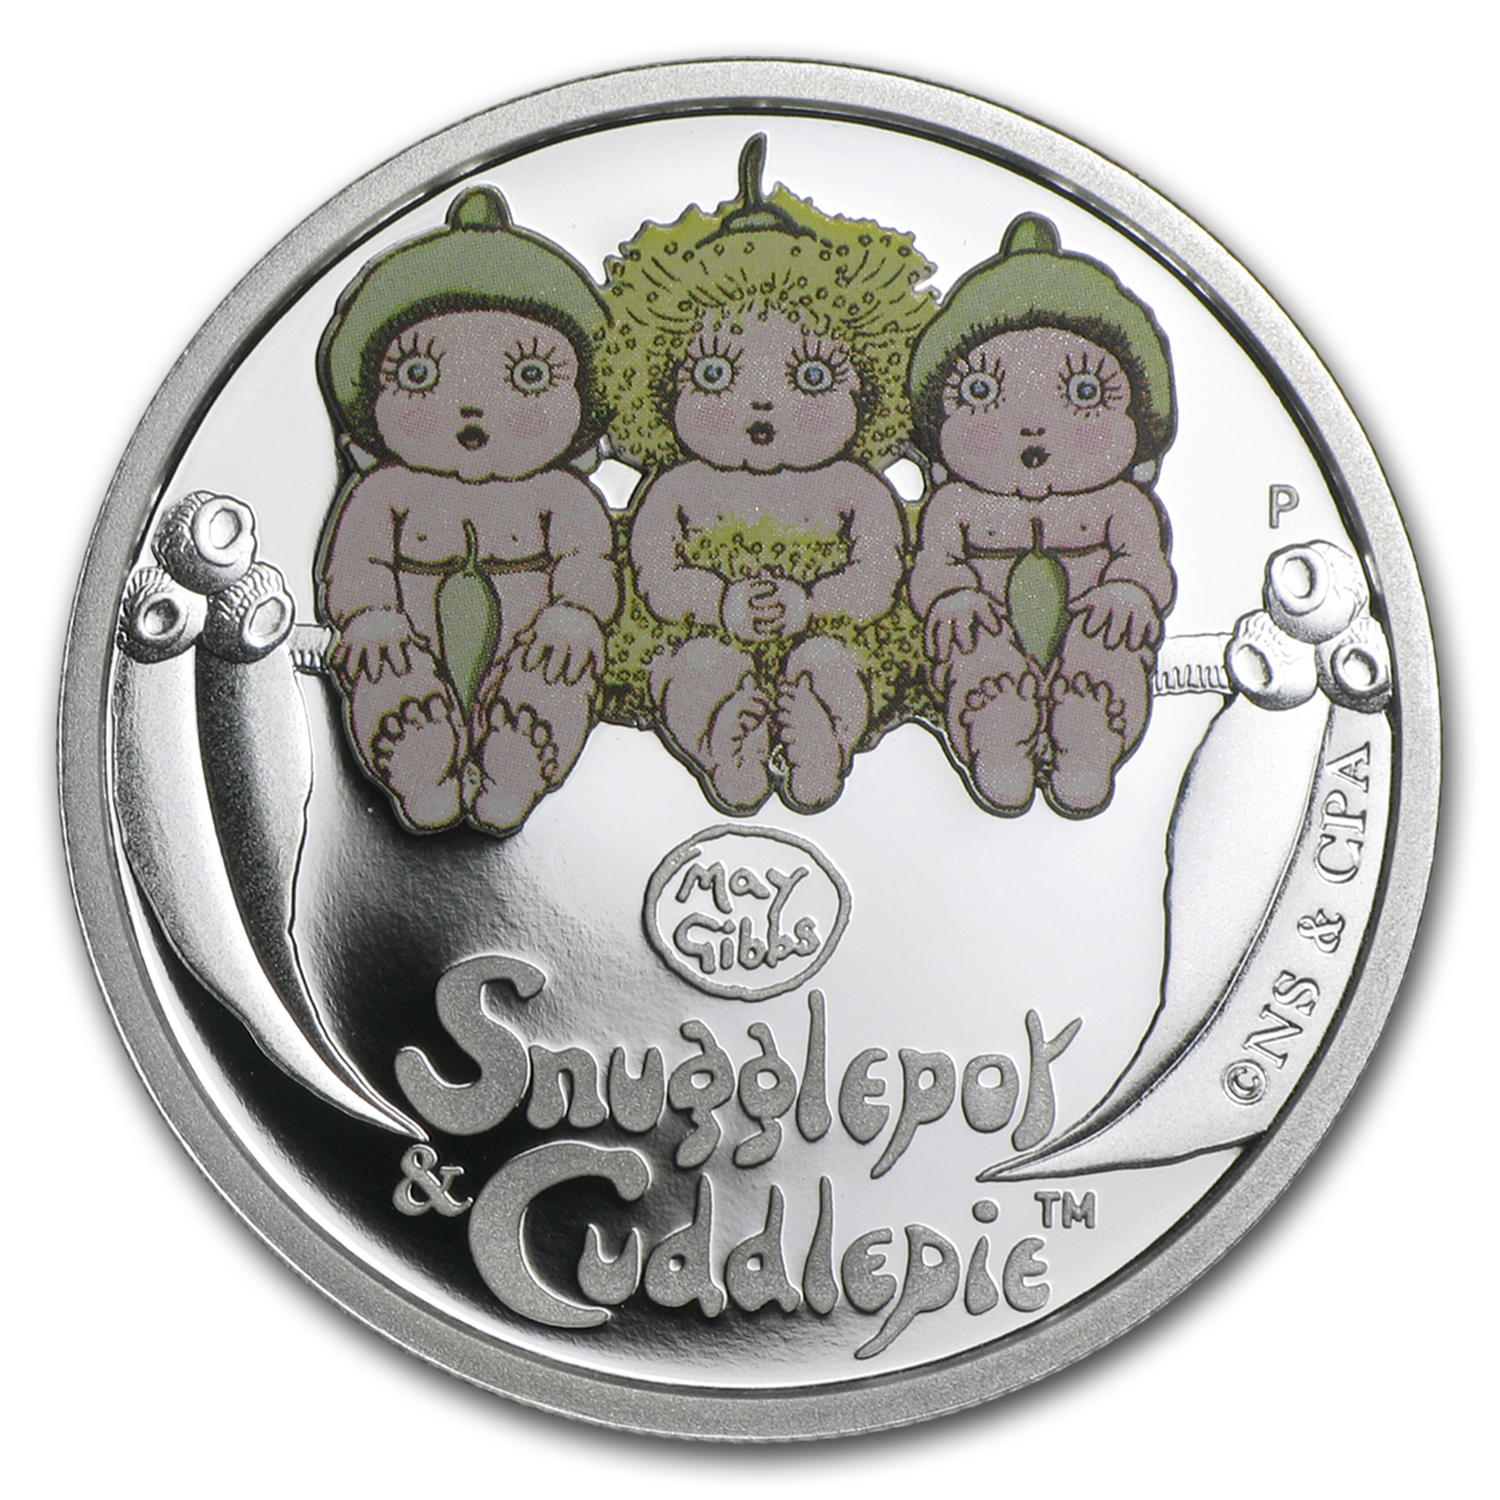 2015 Australia 1/2 oz Silver Snugglepot and Cuddlepie Proof